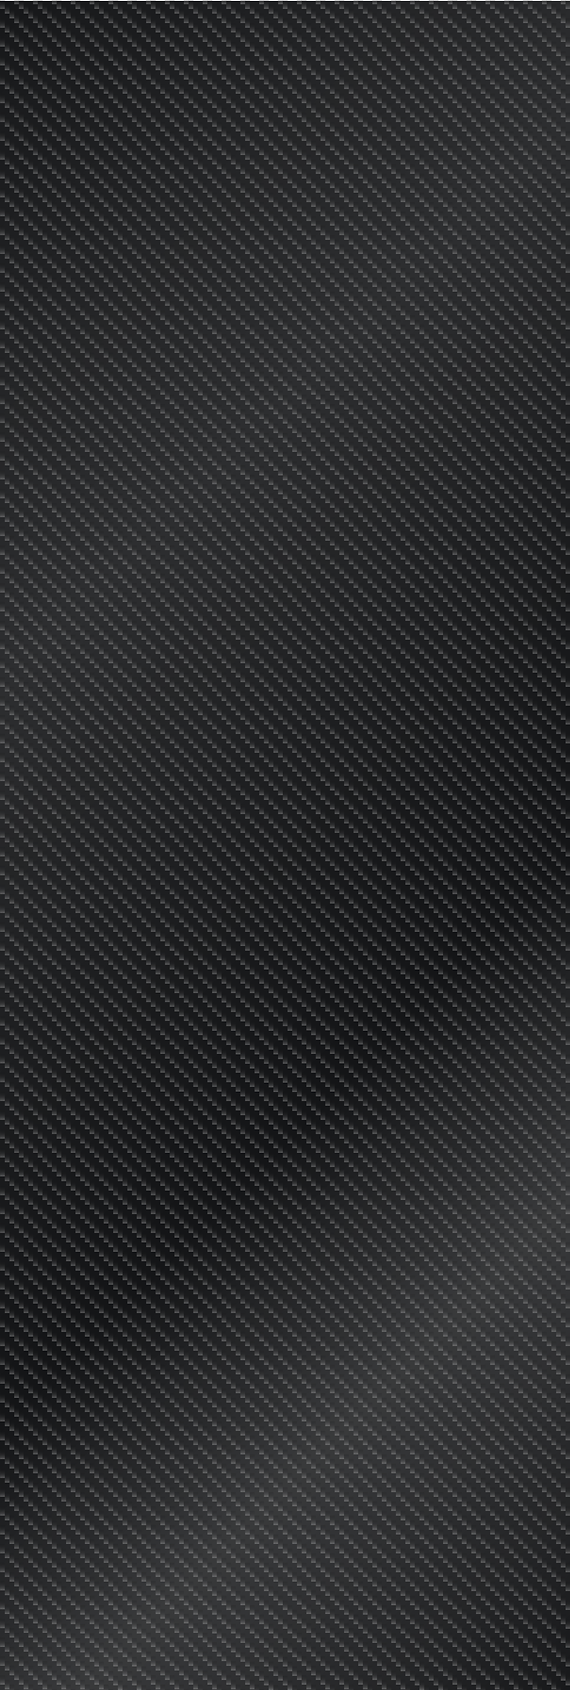 texture carbone-02.png